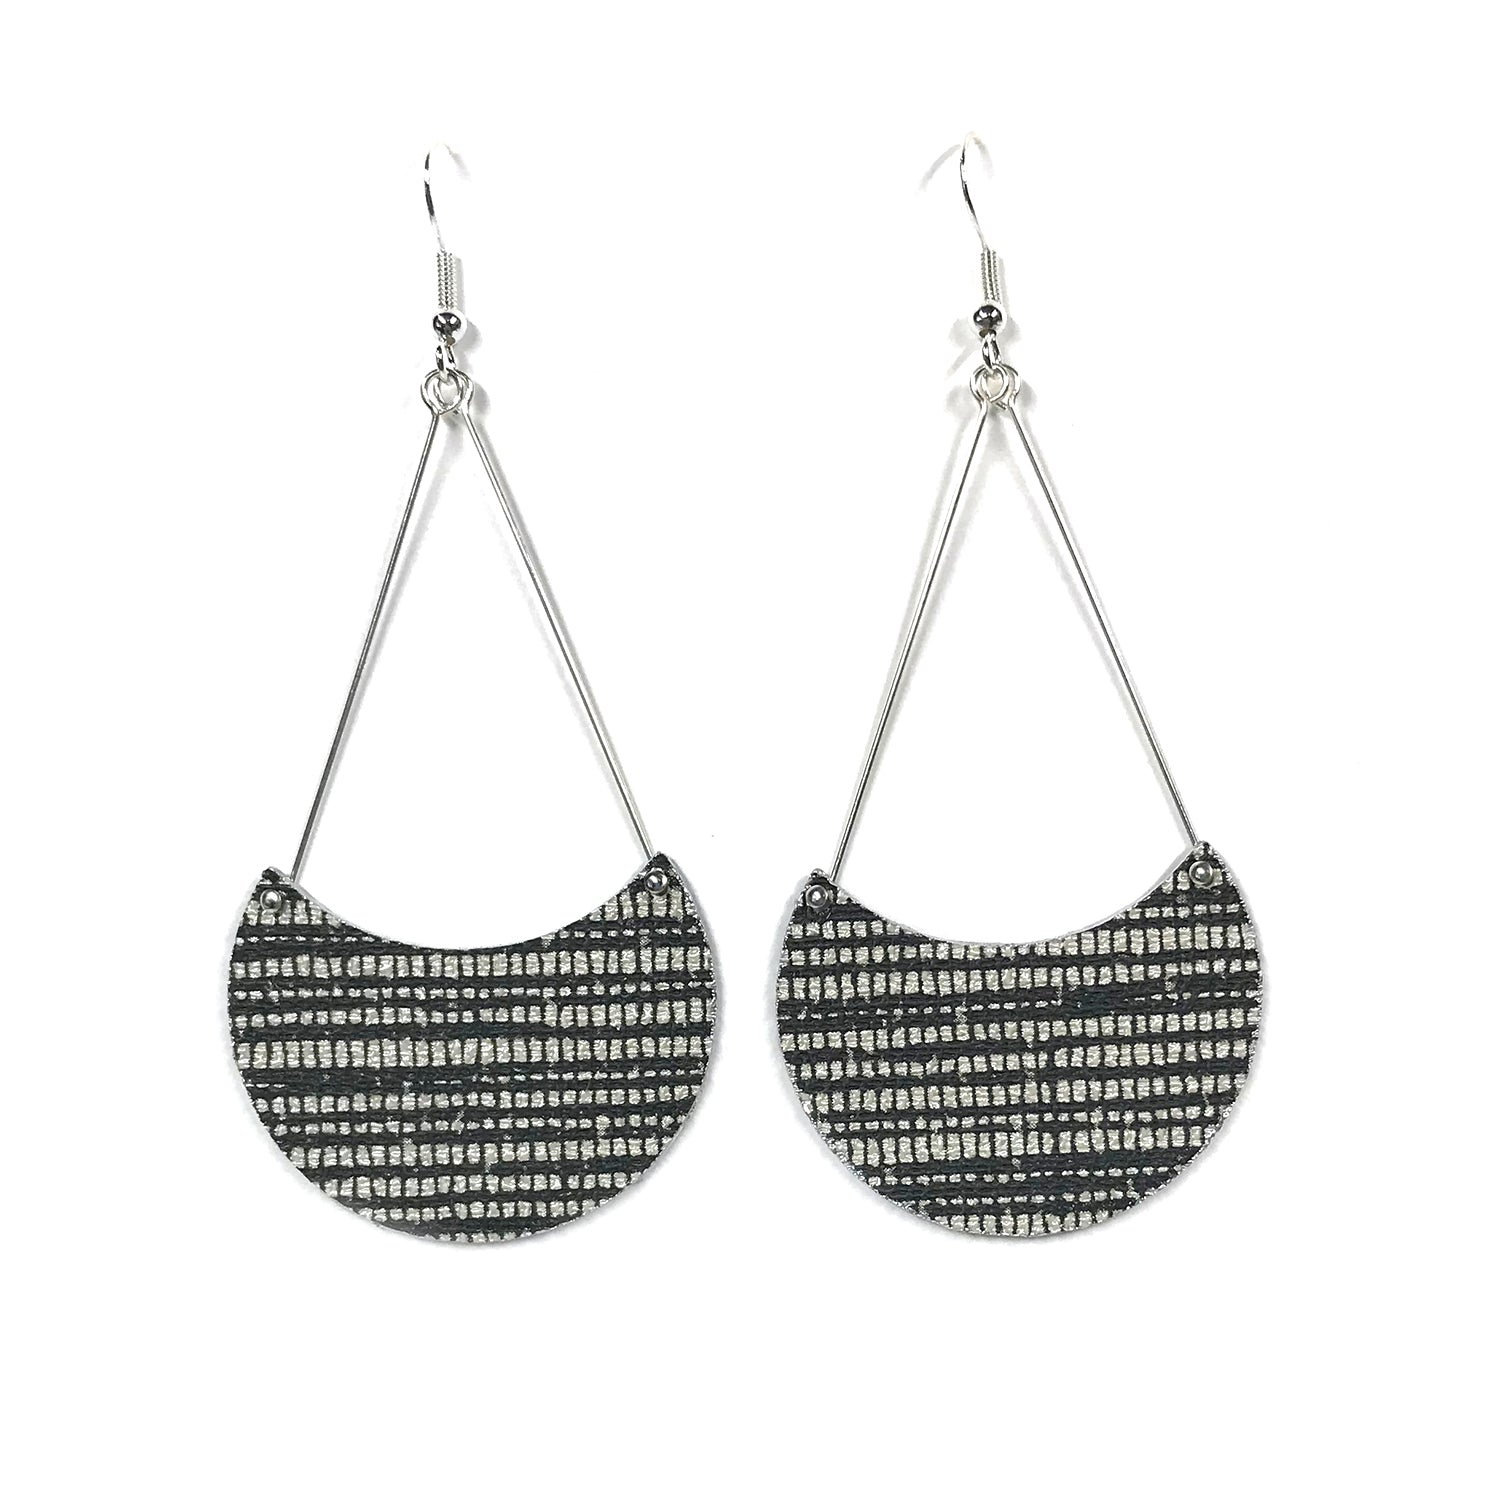 Gracie Nicole Sophisticated Black and White Crescent Moon Designer Wallpaper Earrings